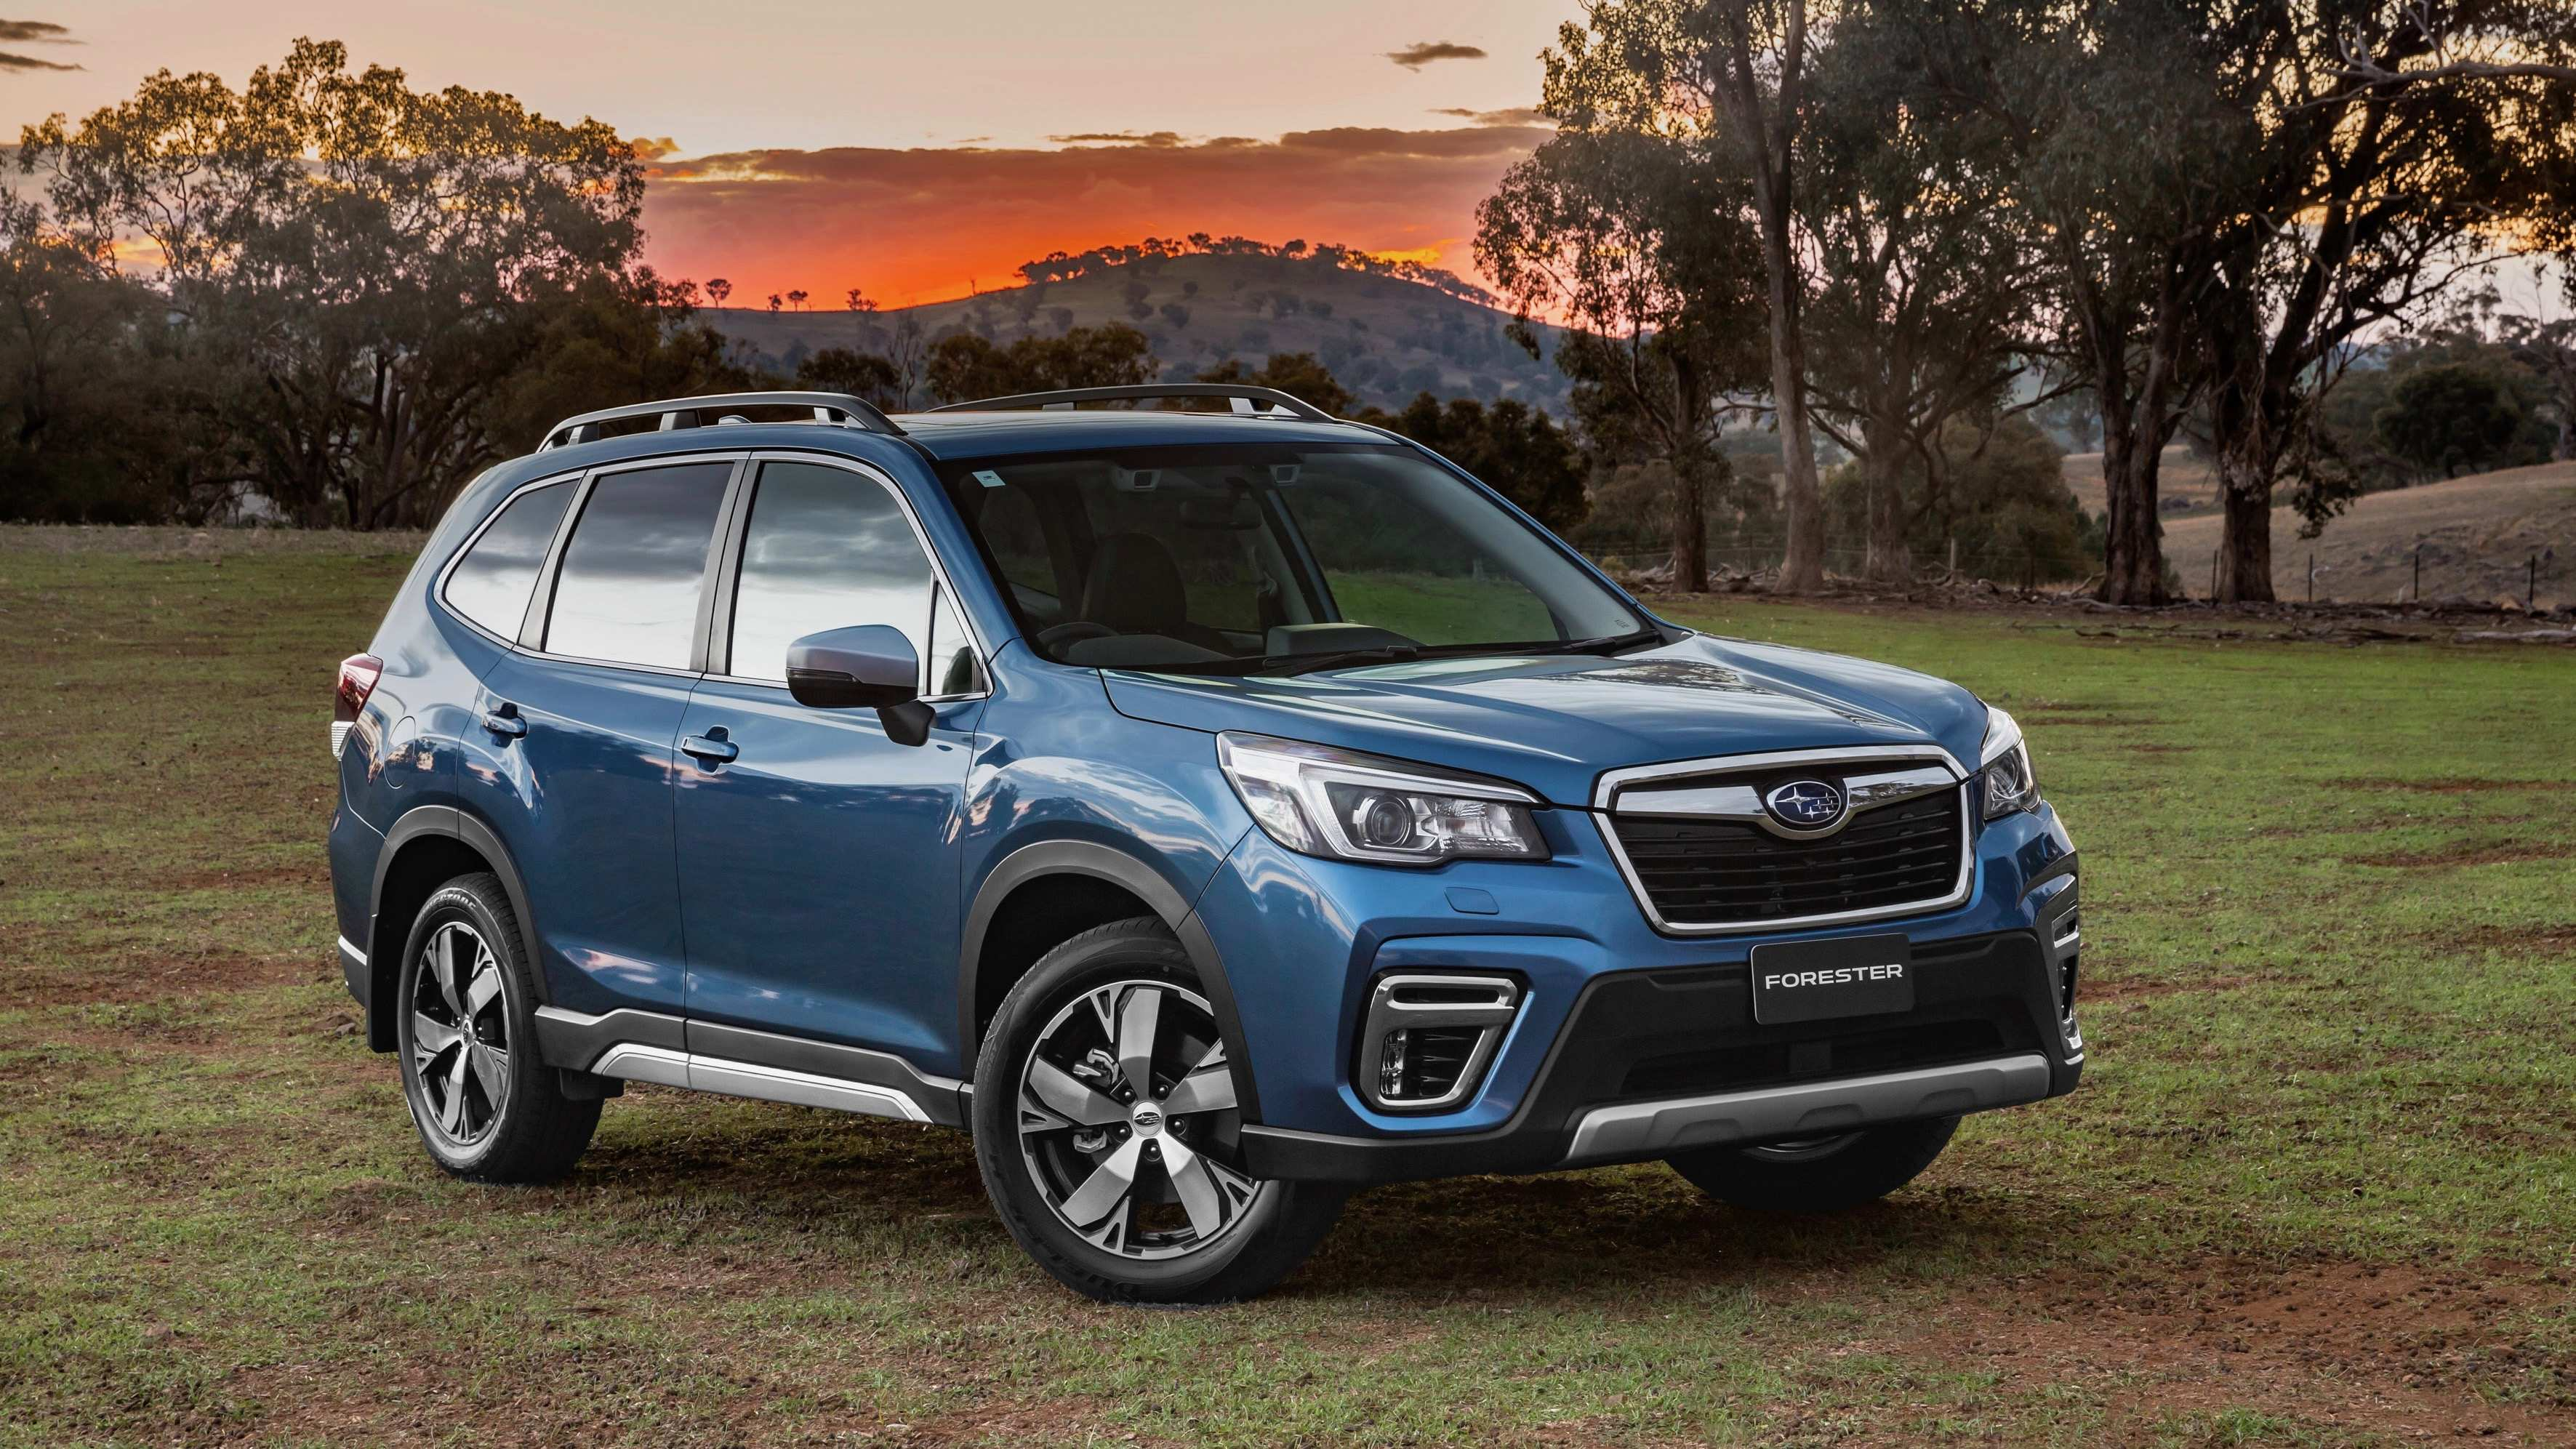 75 The 2019 Subaru Forester Rumors for 2019 Subaru Forester